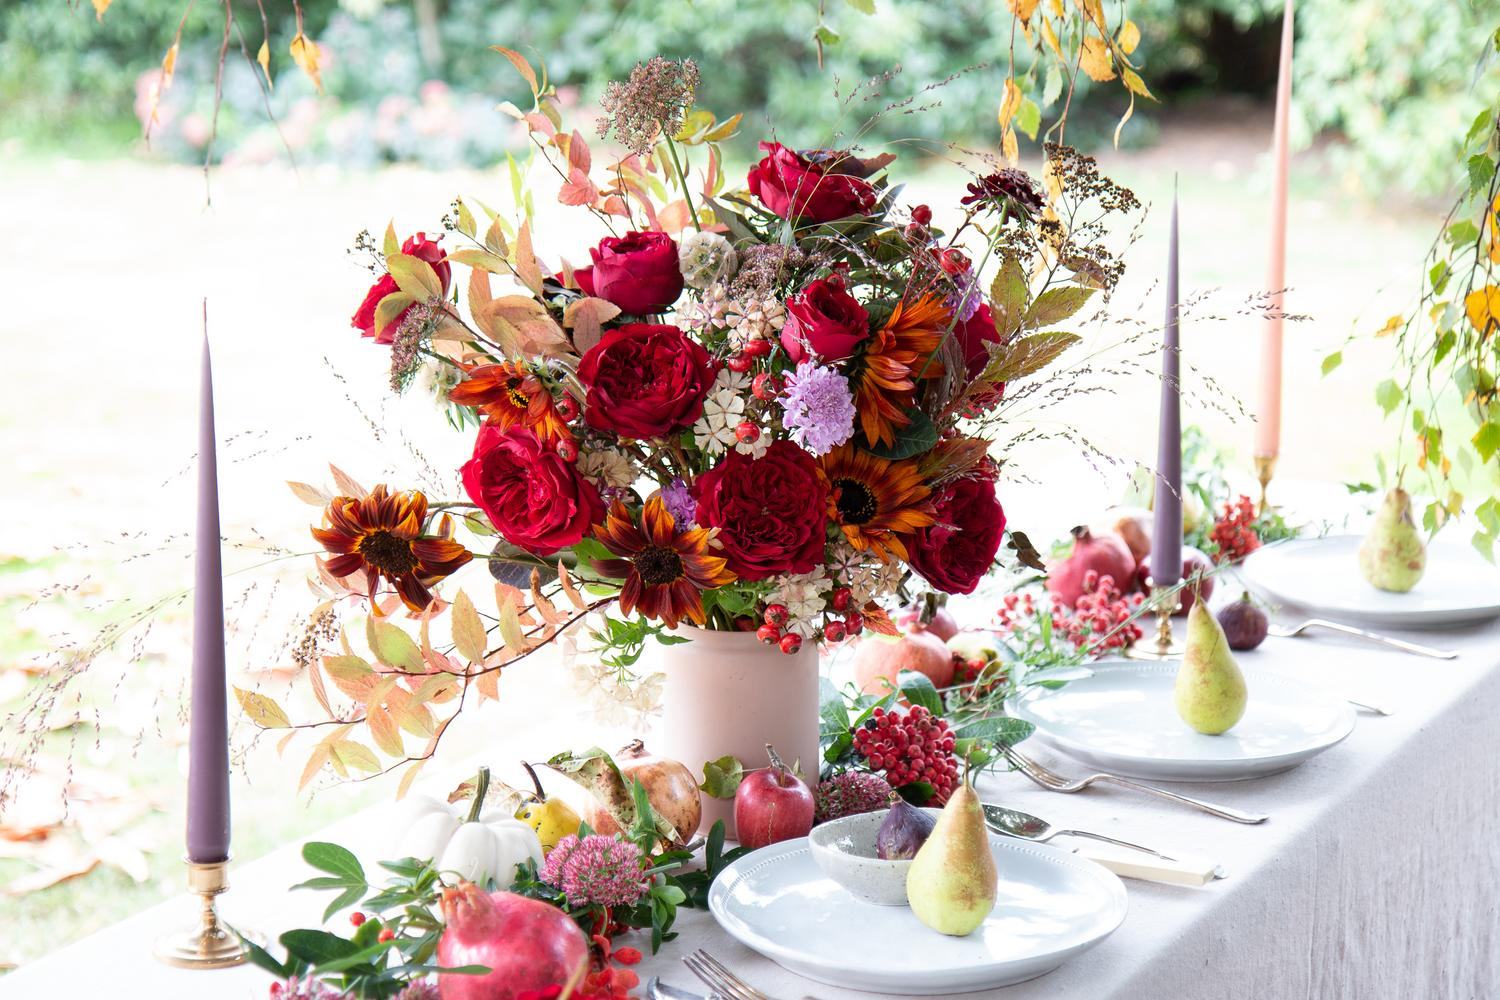 Tess Red Roses Outdoor Wedding Celebration Table Design